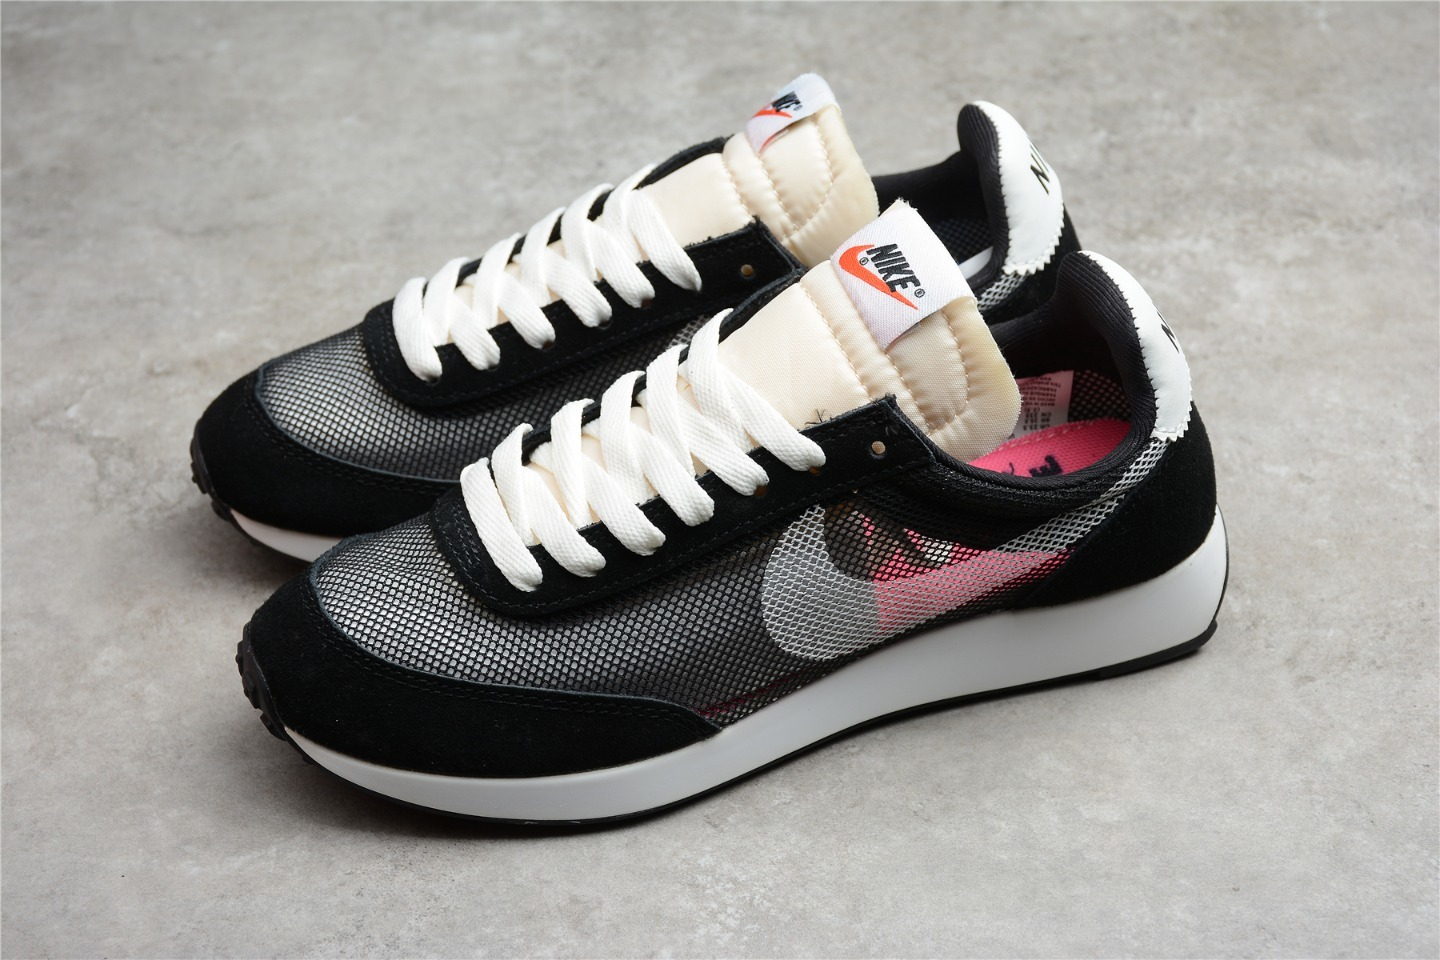 2021 Hot sale Nike Air Tailwind 79 BeTrue white and black running shoes BV7930-401 overall